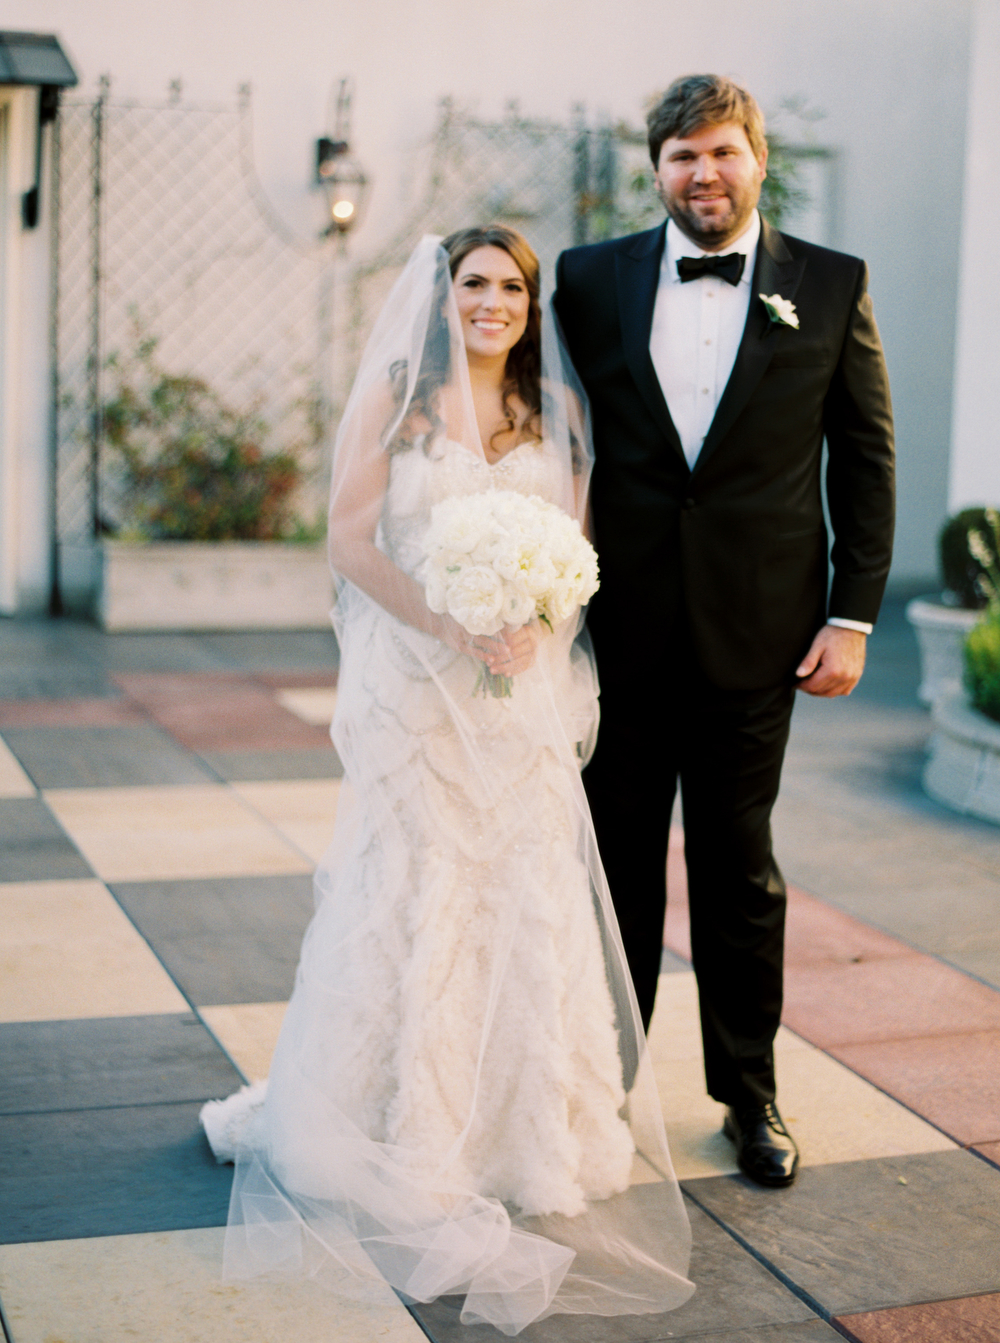 First look inspiration | Rooftop reveal | How to transform an open ballroom with stunning decor | Sapphire Events | Greer G Photography | Board of Trade | White and Gold Wedding | Winter Wedding Inspiration | White and Green Wedding | Ballroom wedding